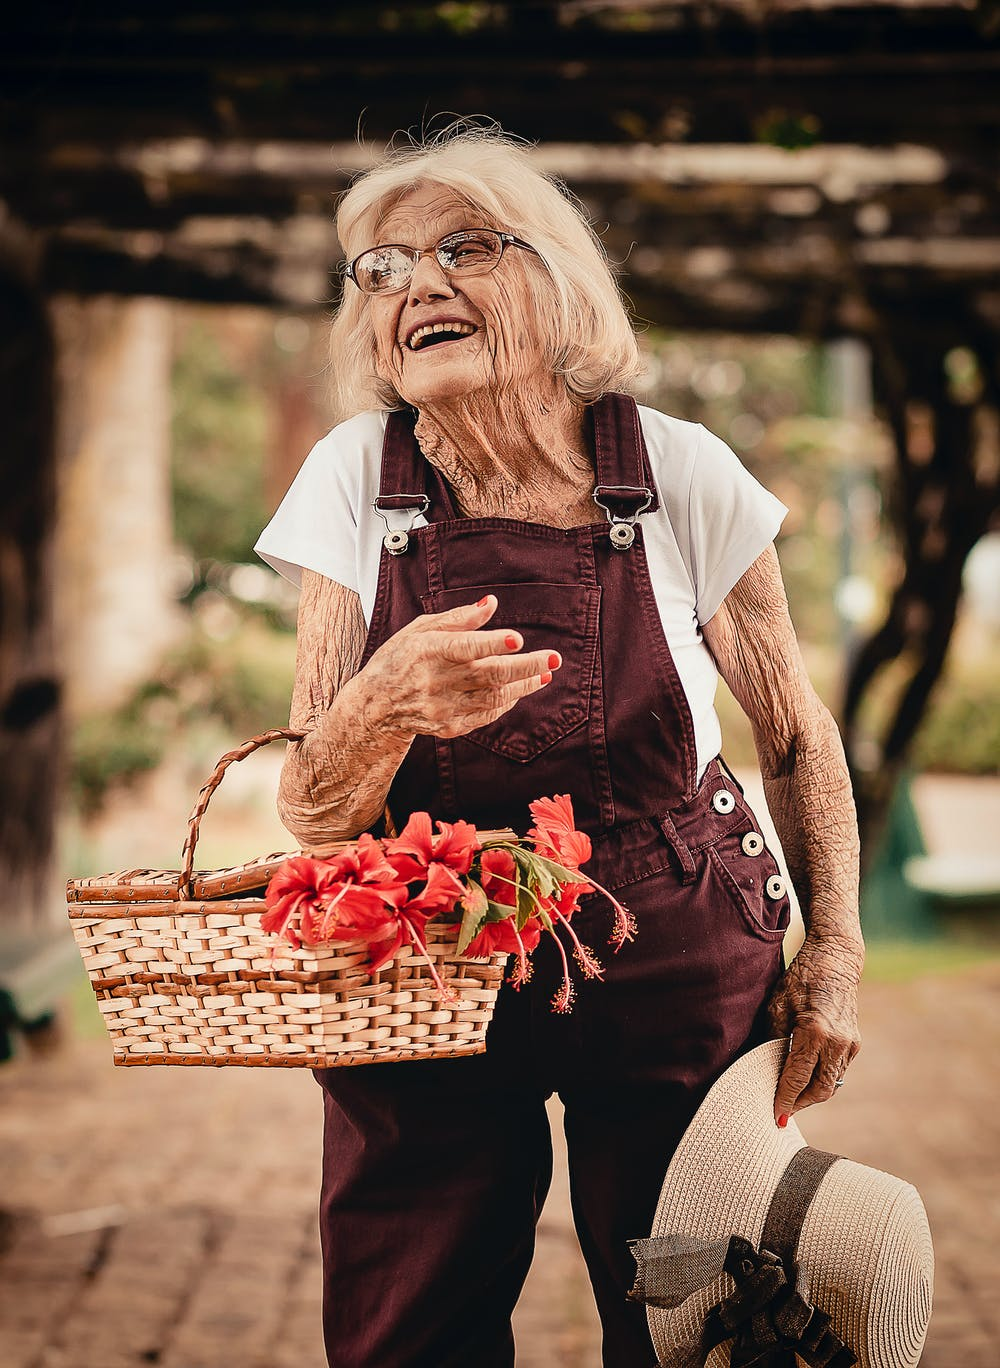 Old woman holding sunhat and picnic basket | Photo: Pexels